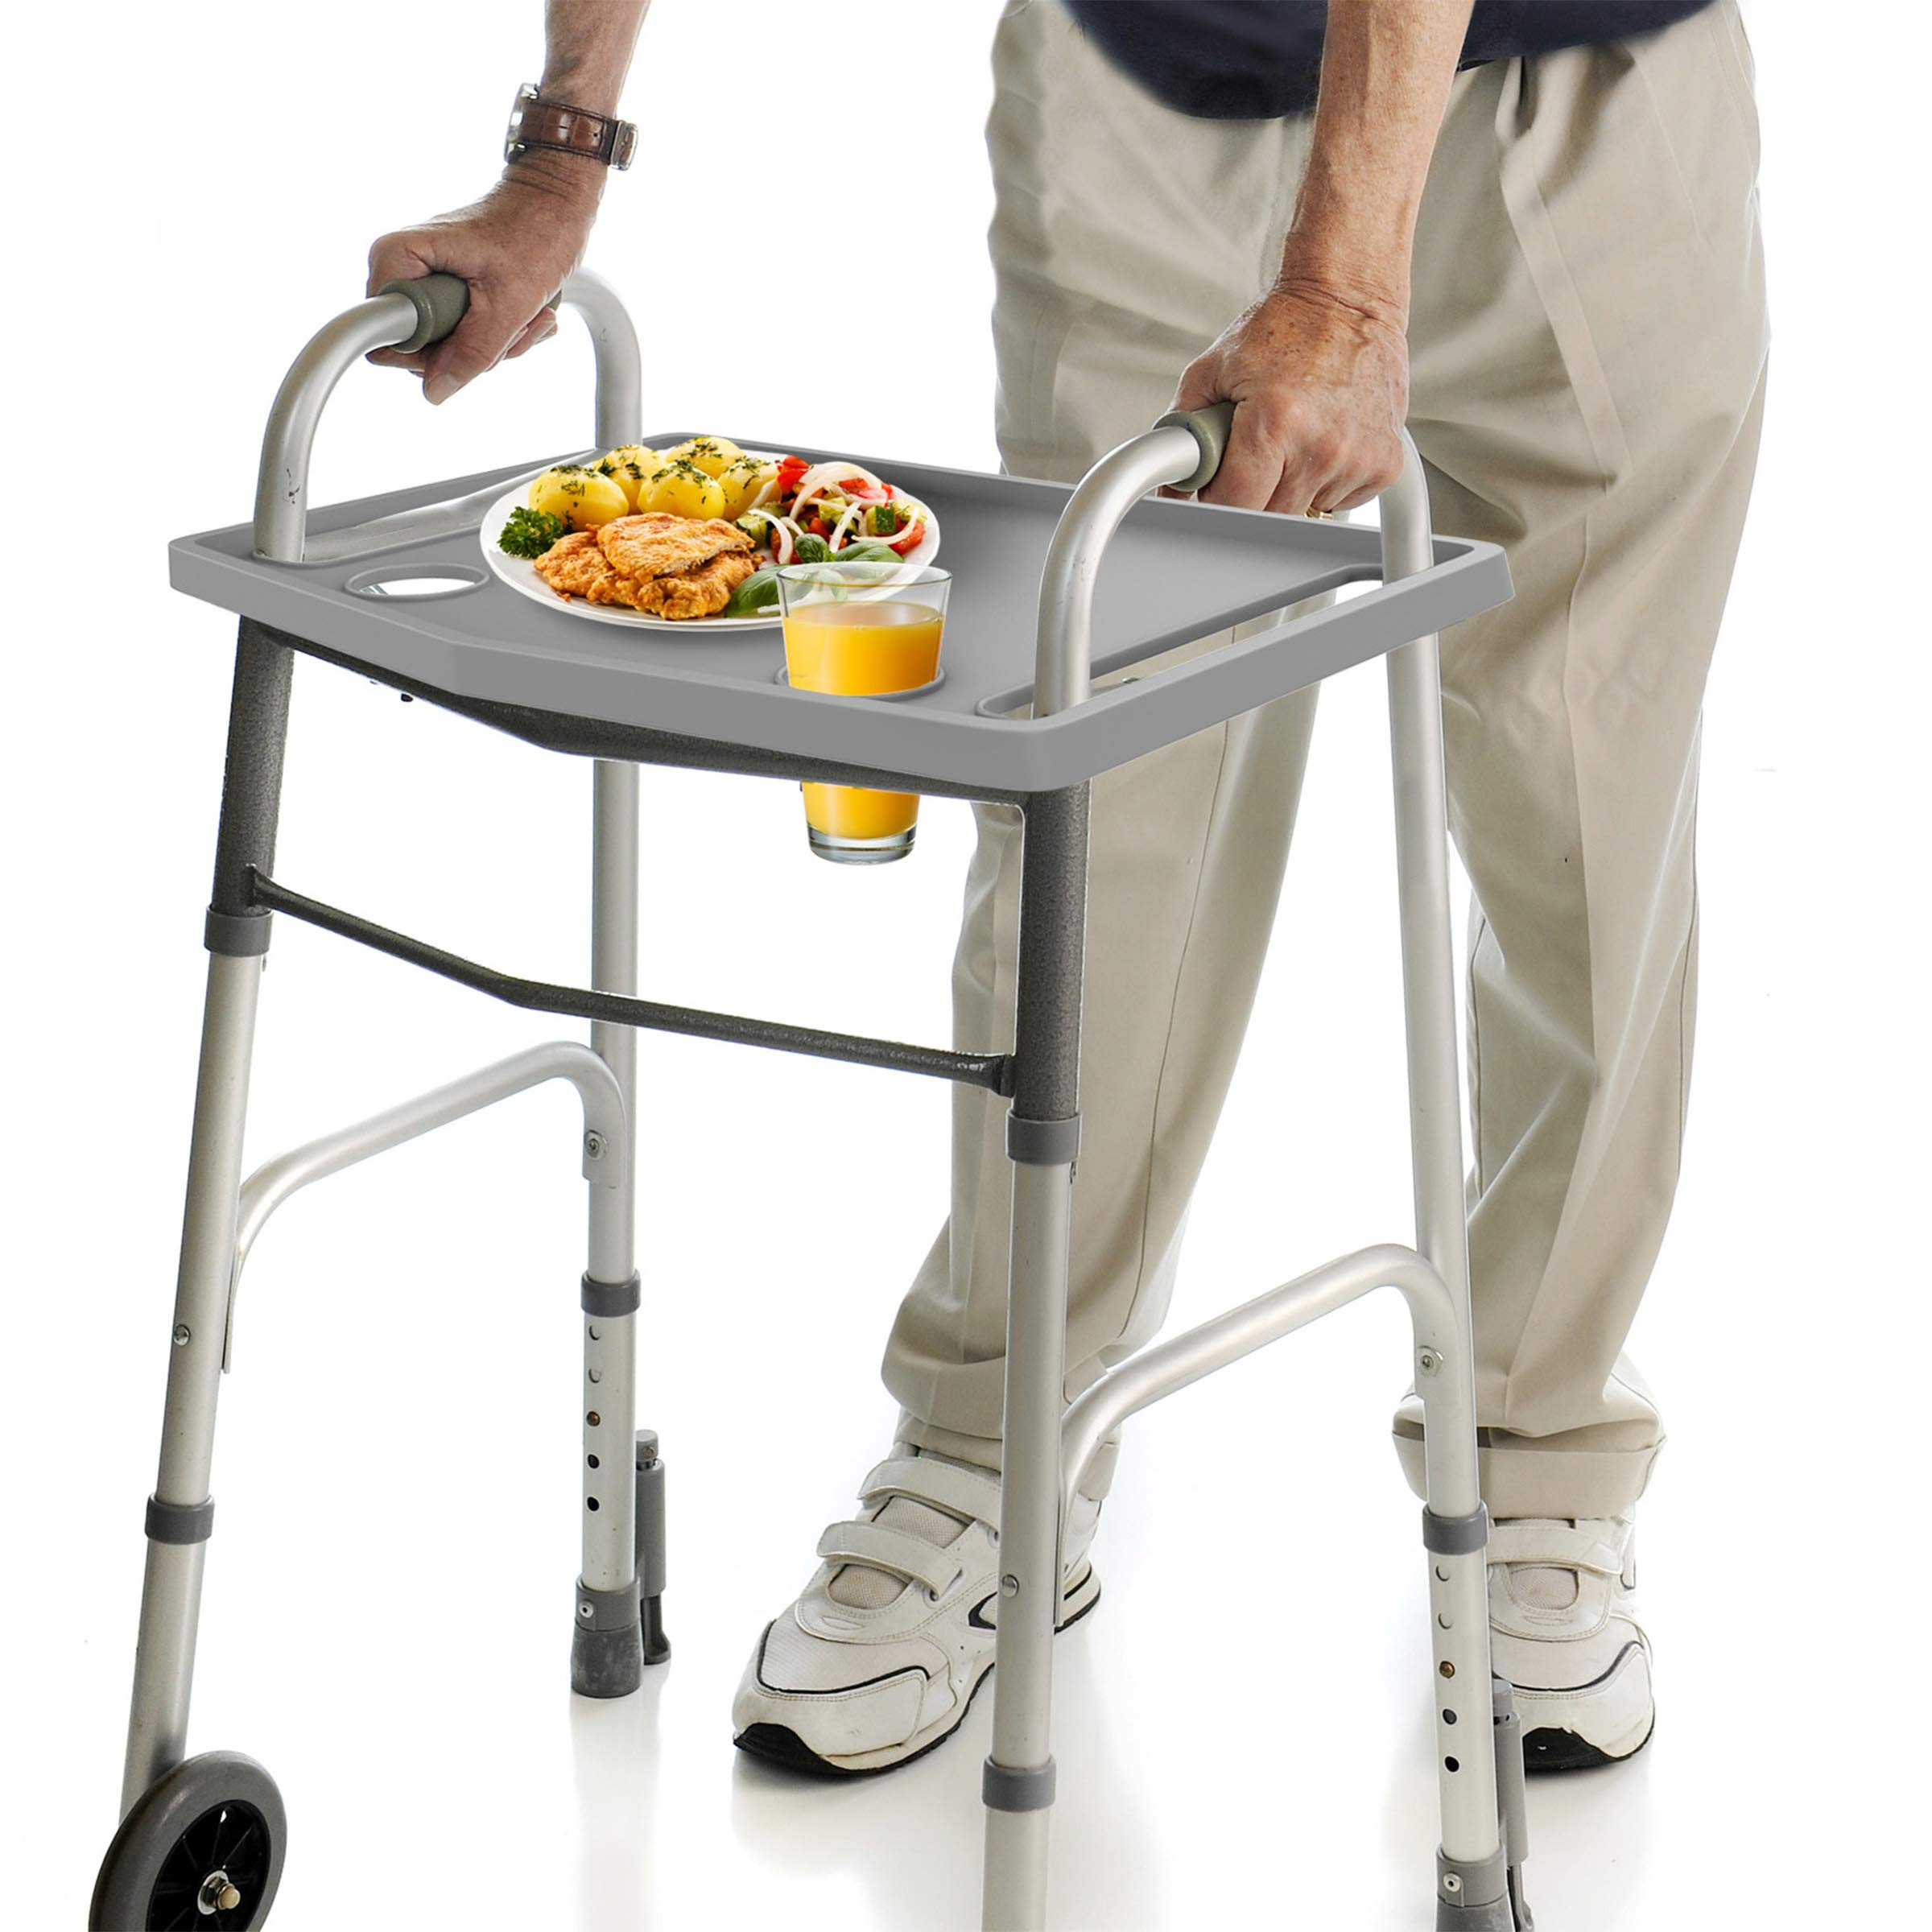 Bluestone Walker Tray- Upright with 2 Cup Holders-Universal Table Fits Most Standard Folding Walkers-Home Mobility Medical Equipment Accessories by Bluestone